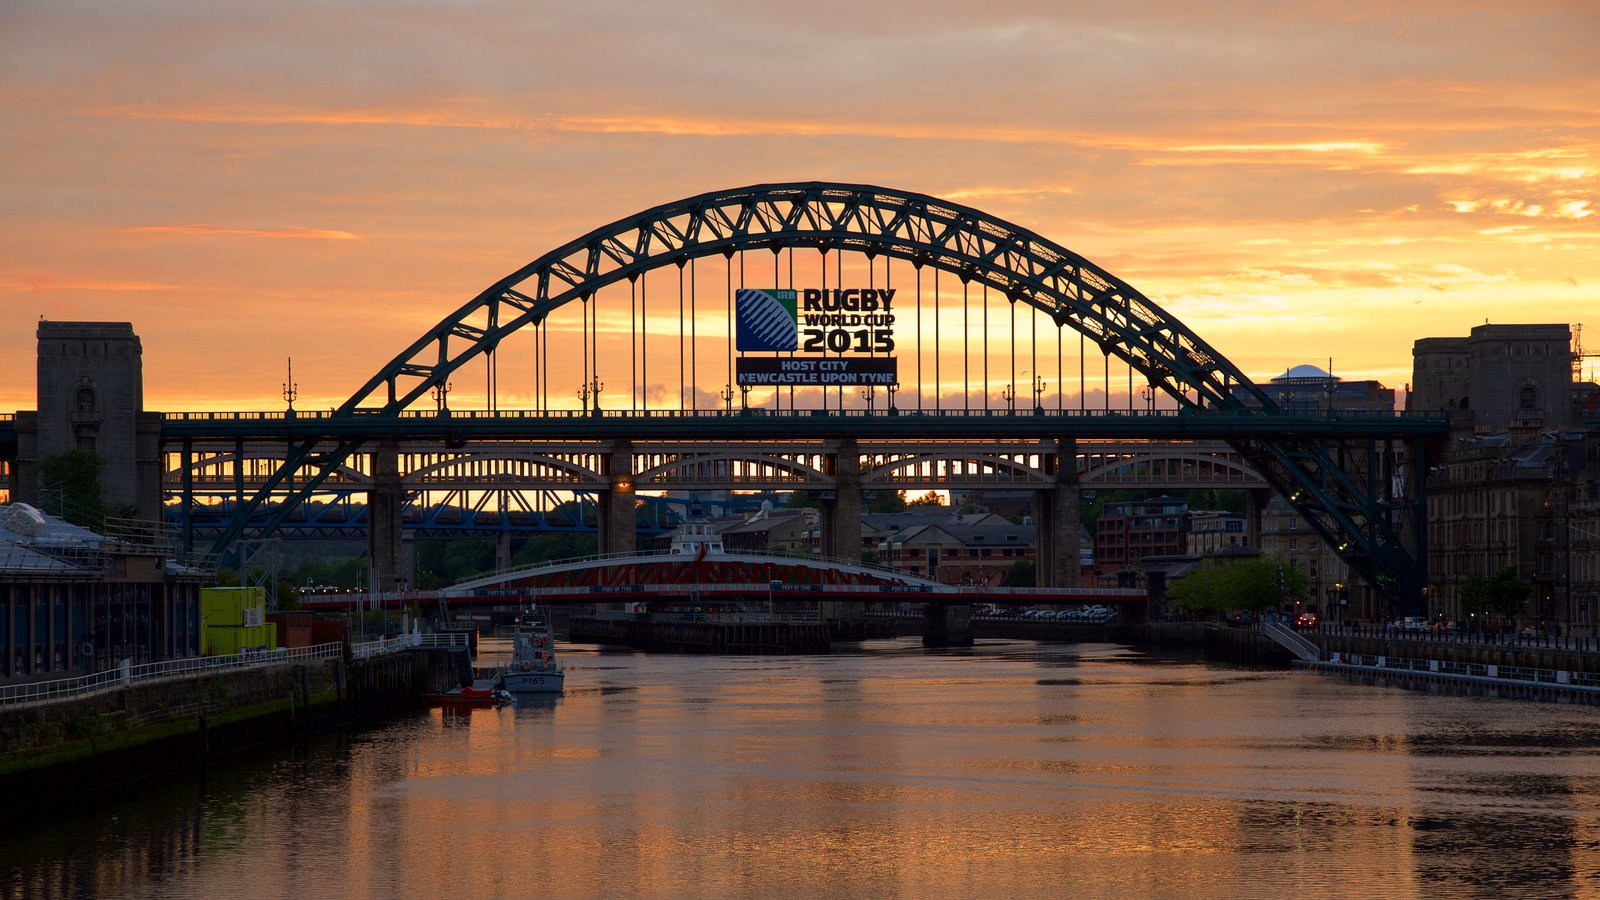 Pictures of newcastle upon tyne to buy The Mouth of the Tyne Festival - security, parking, food